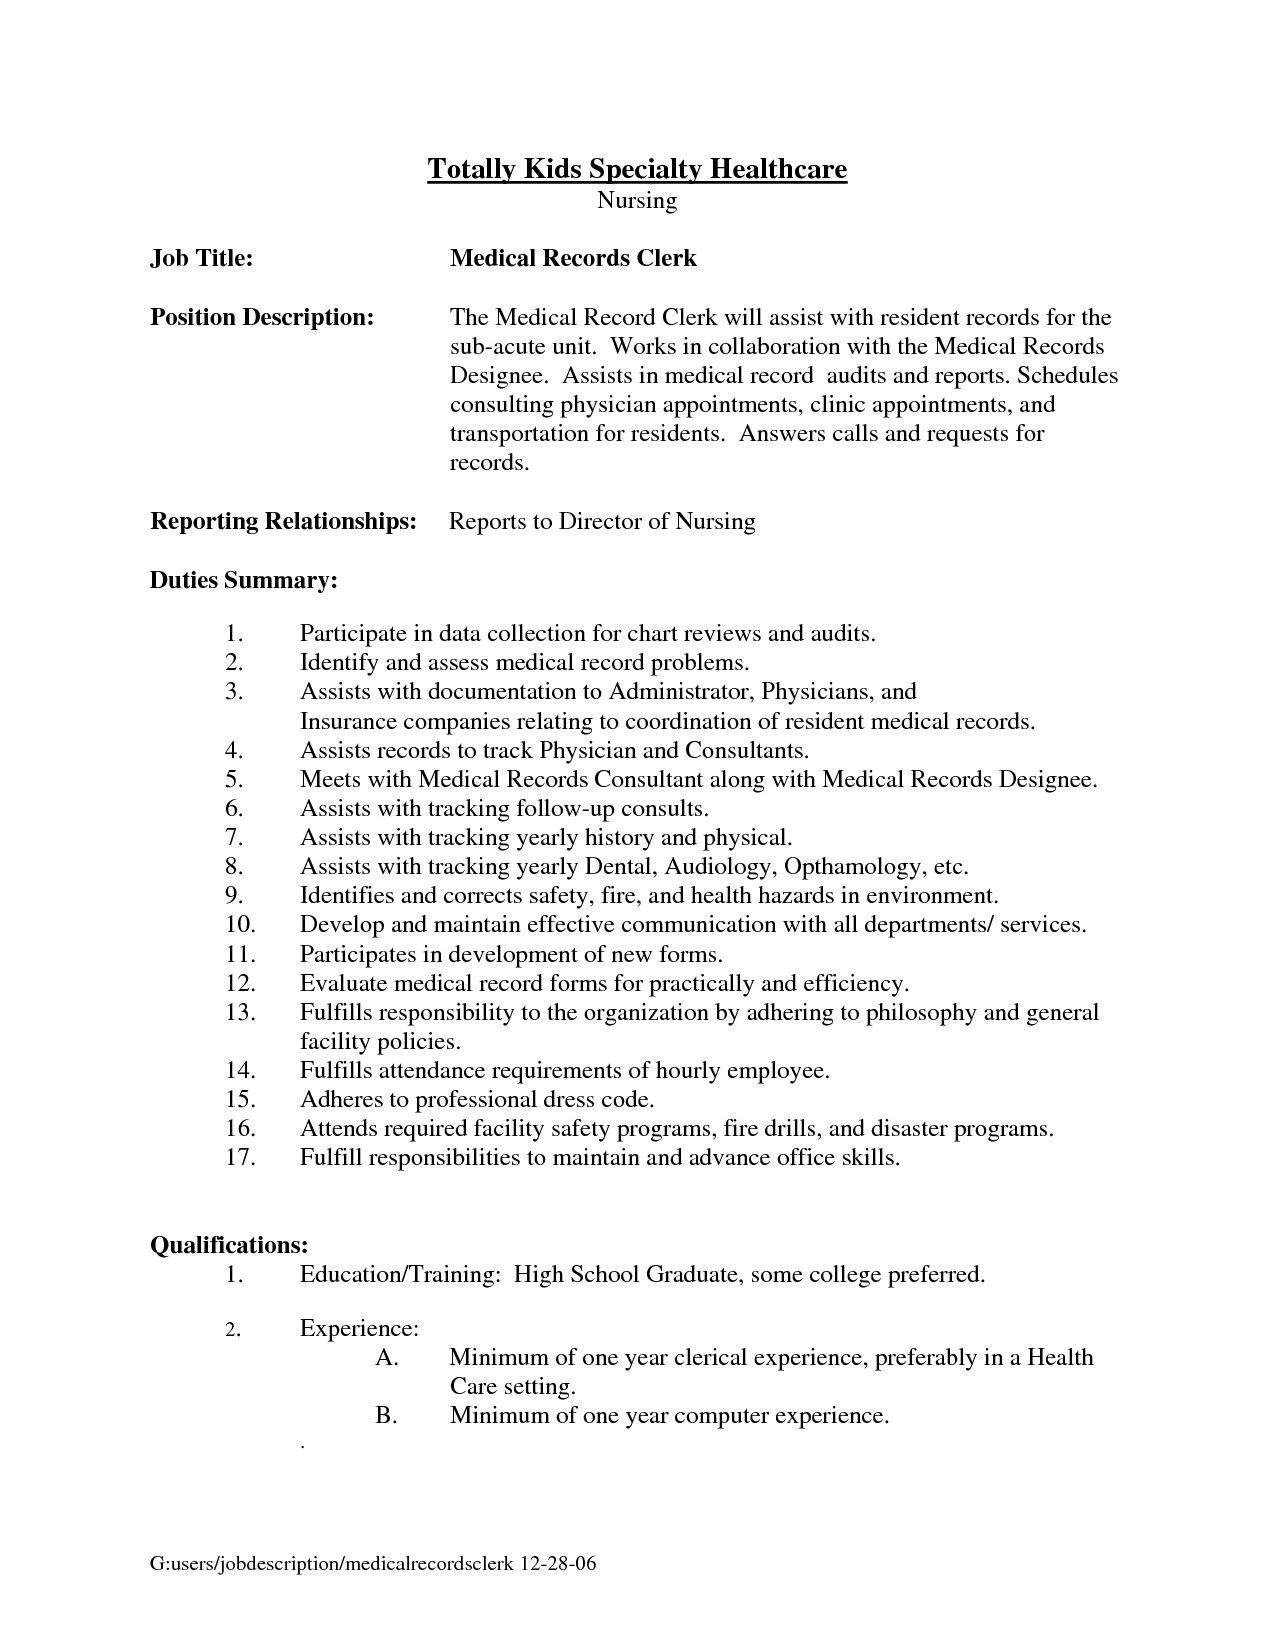 67 Elegant Photos Of Resume Examples for Medical Records